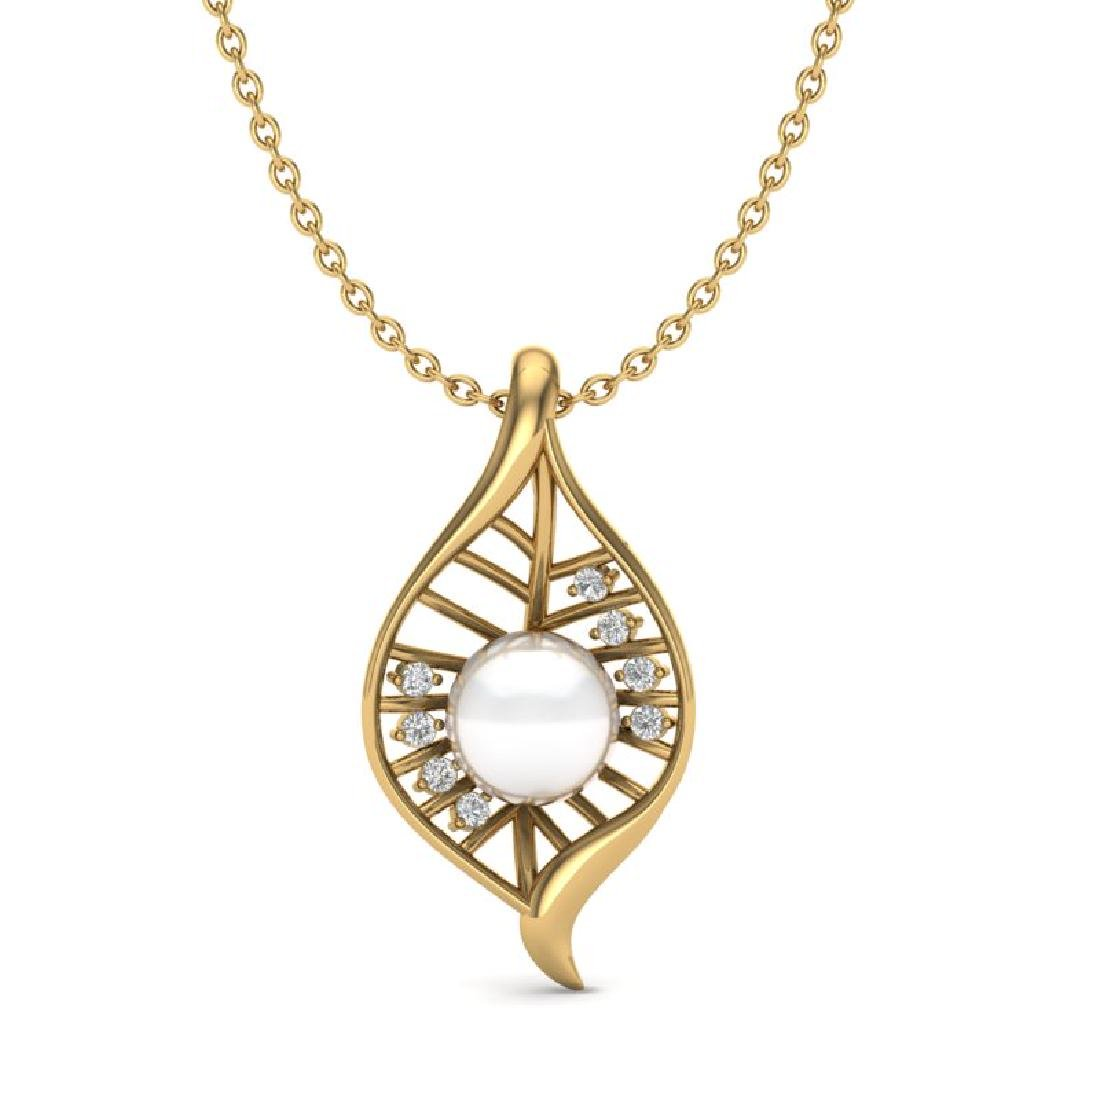 0.31 CTW VS/SI Diamond With White Pearl Necklace 14K